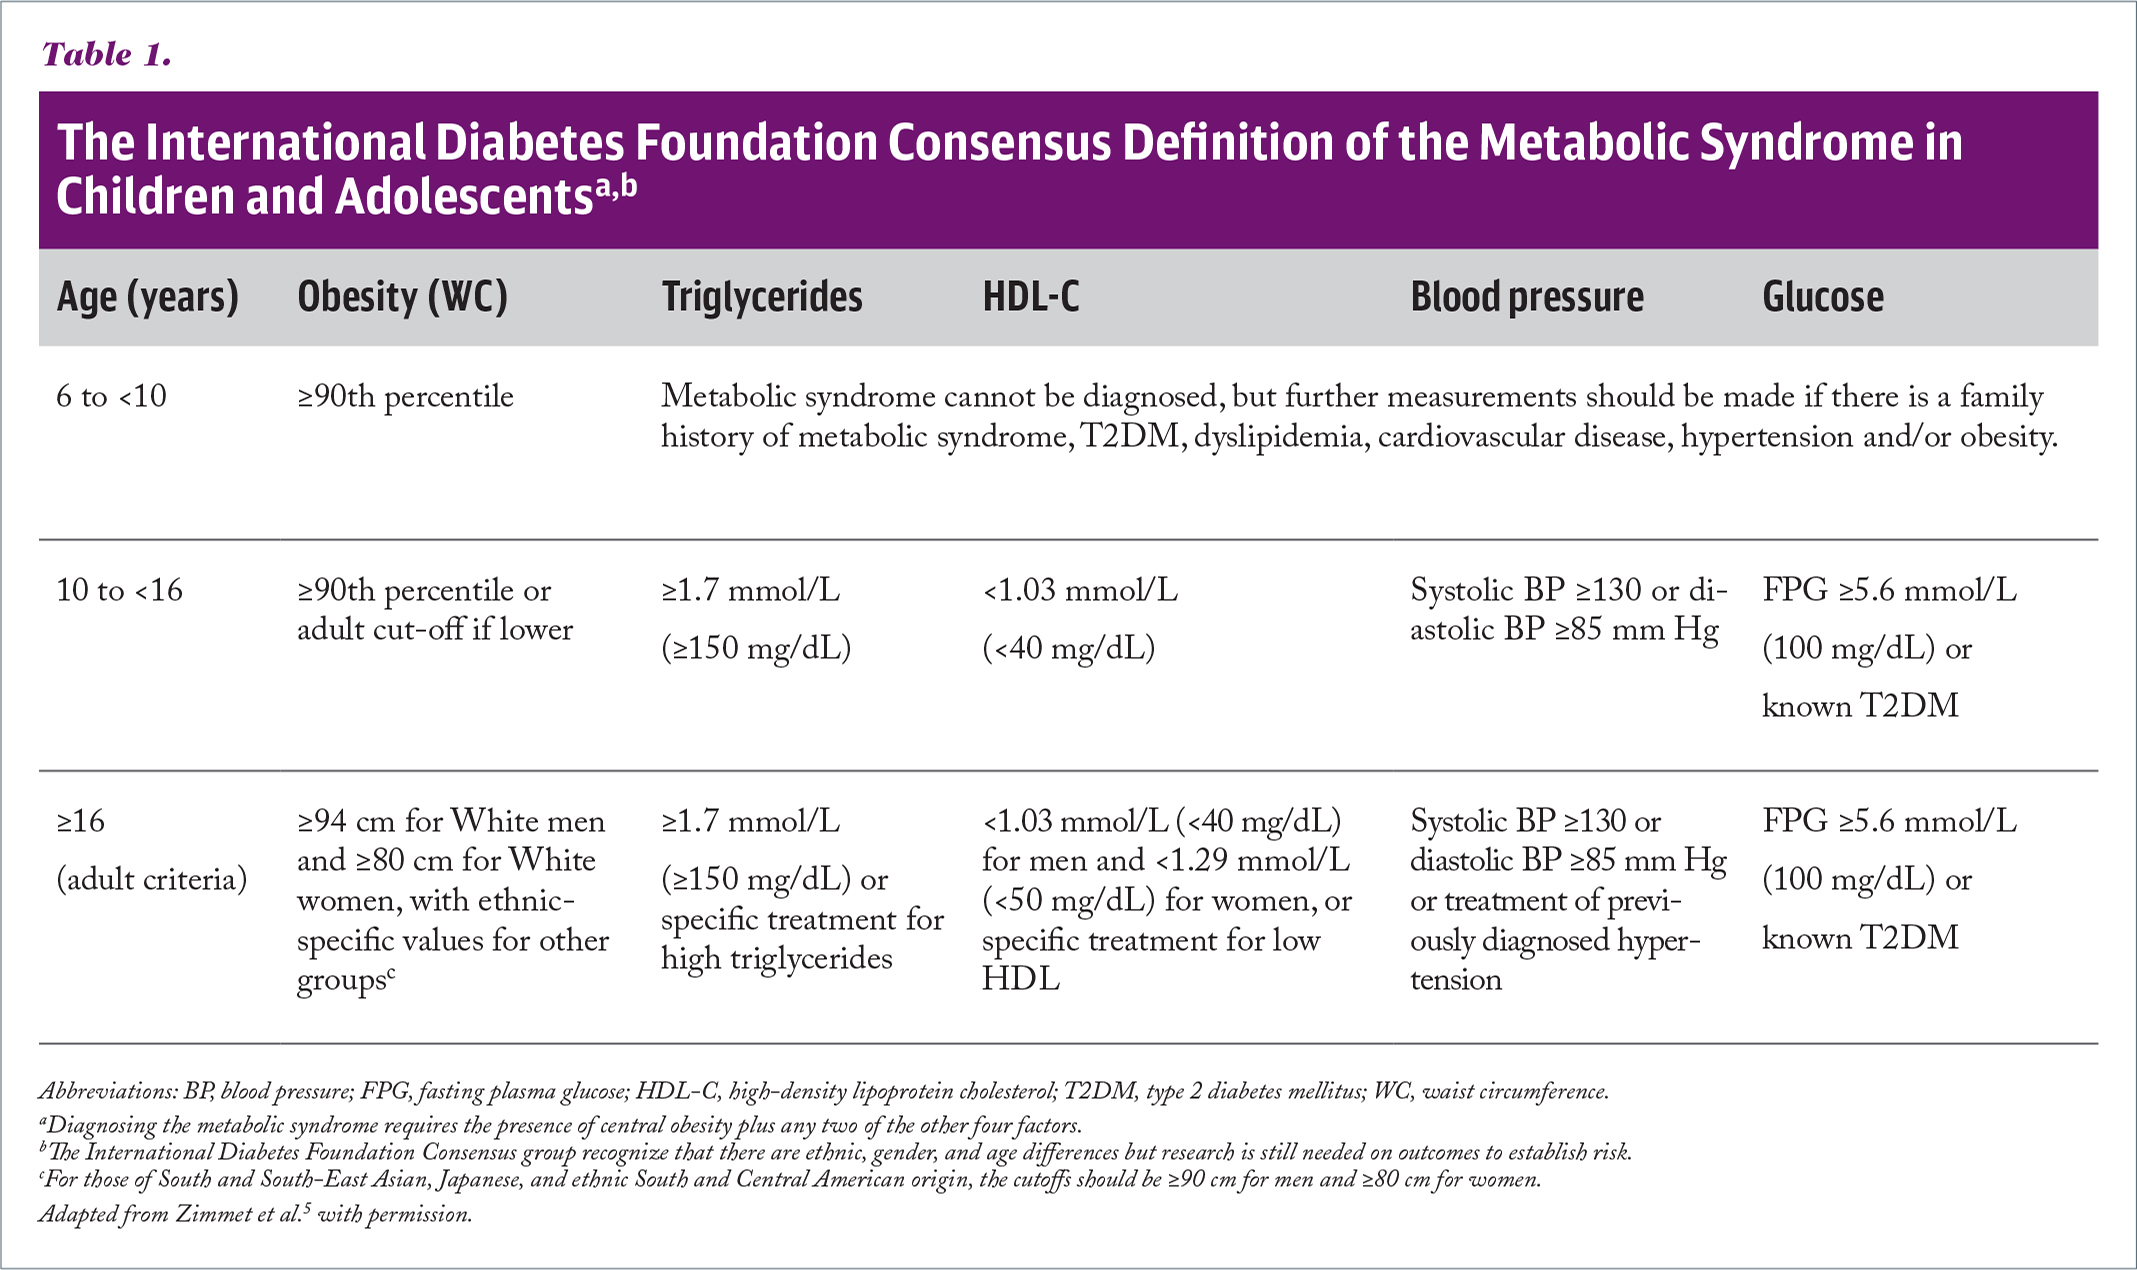 The International Diabetes Foundation Consensus Definition of the Metabolic Syndrome in Children and Adolescentsa,b